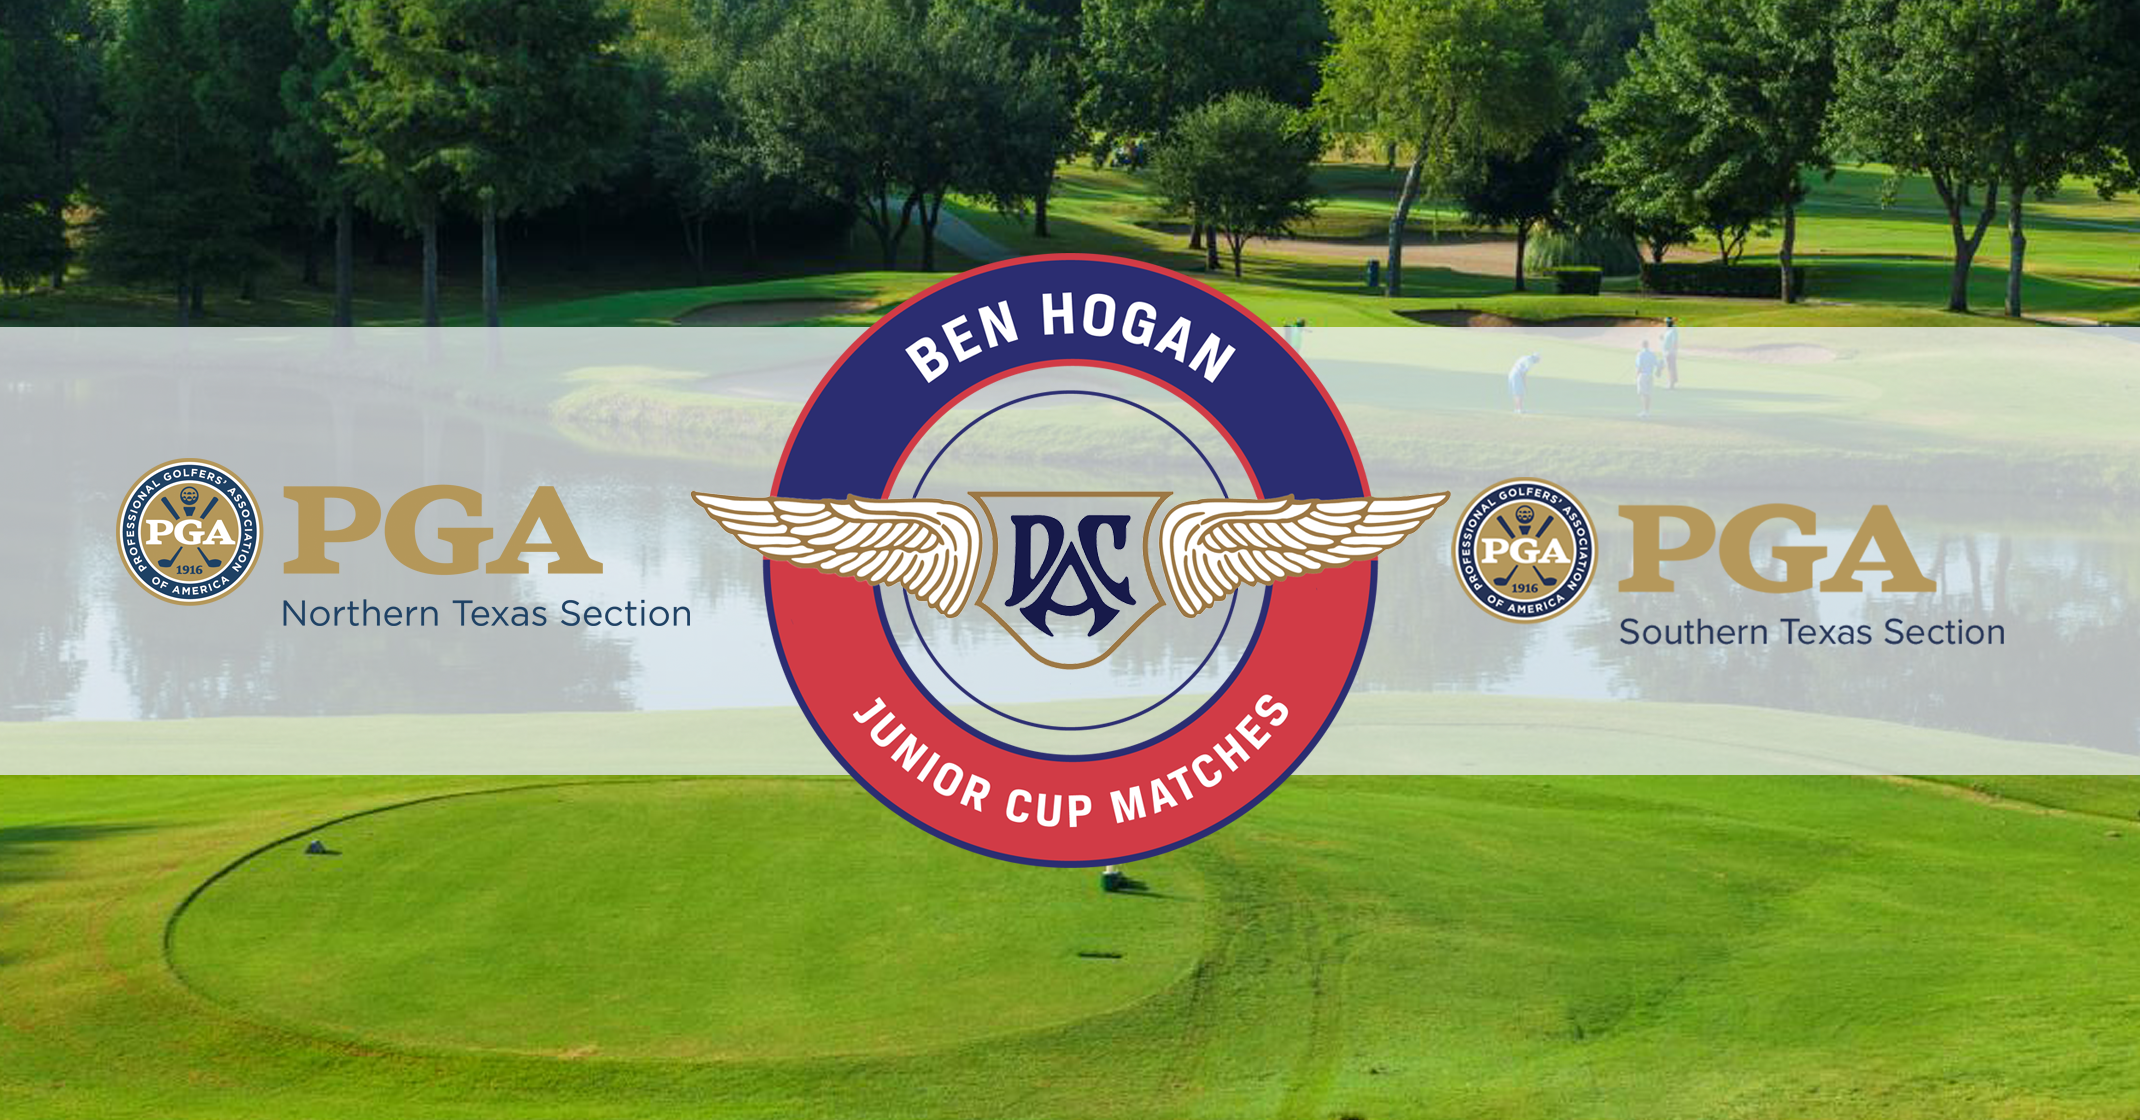 Northern Texas PGA and Southern Texas PGA Ready For 5th Annual Ben Hogan Cup Matches